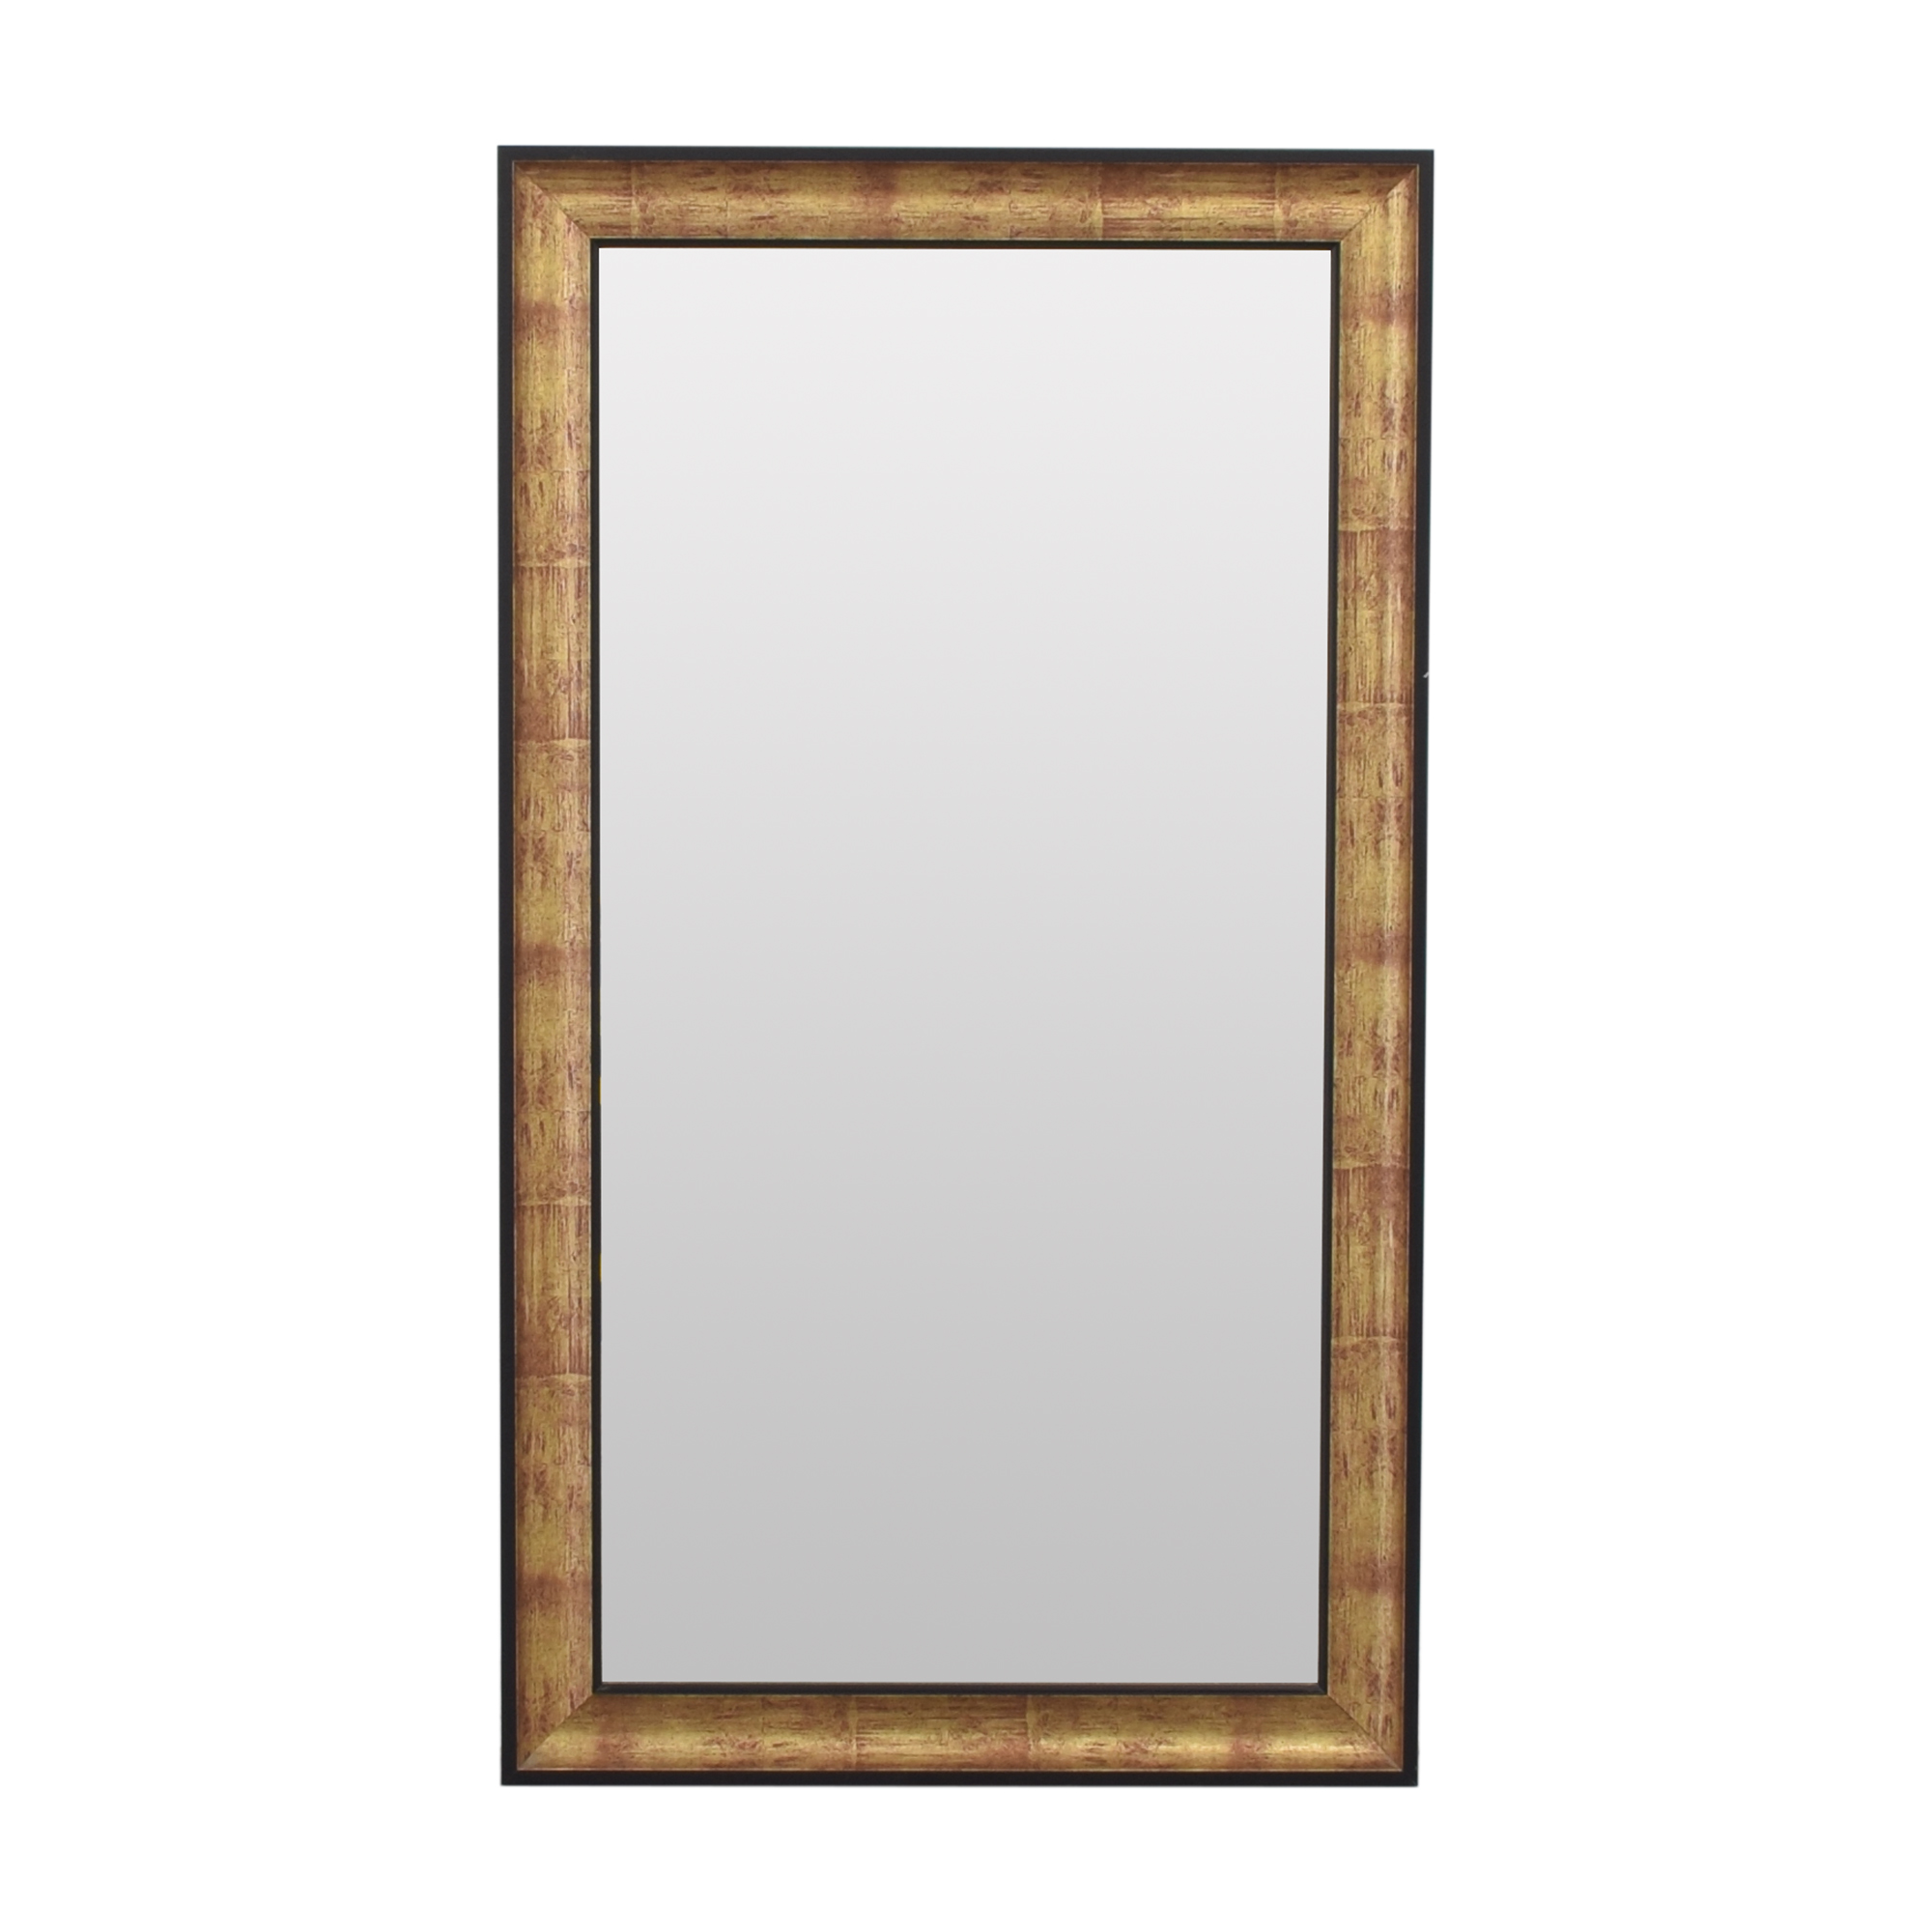 John-Richard Framed Wall Mirror / Mirrors